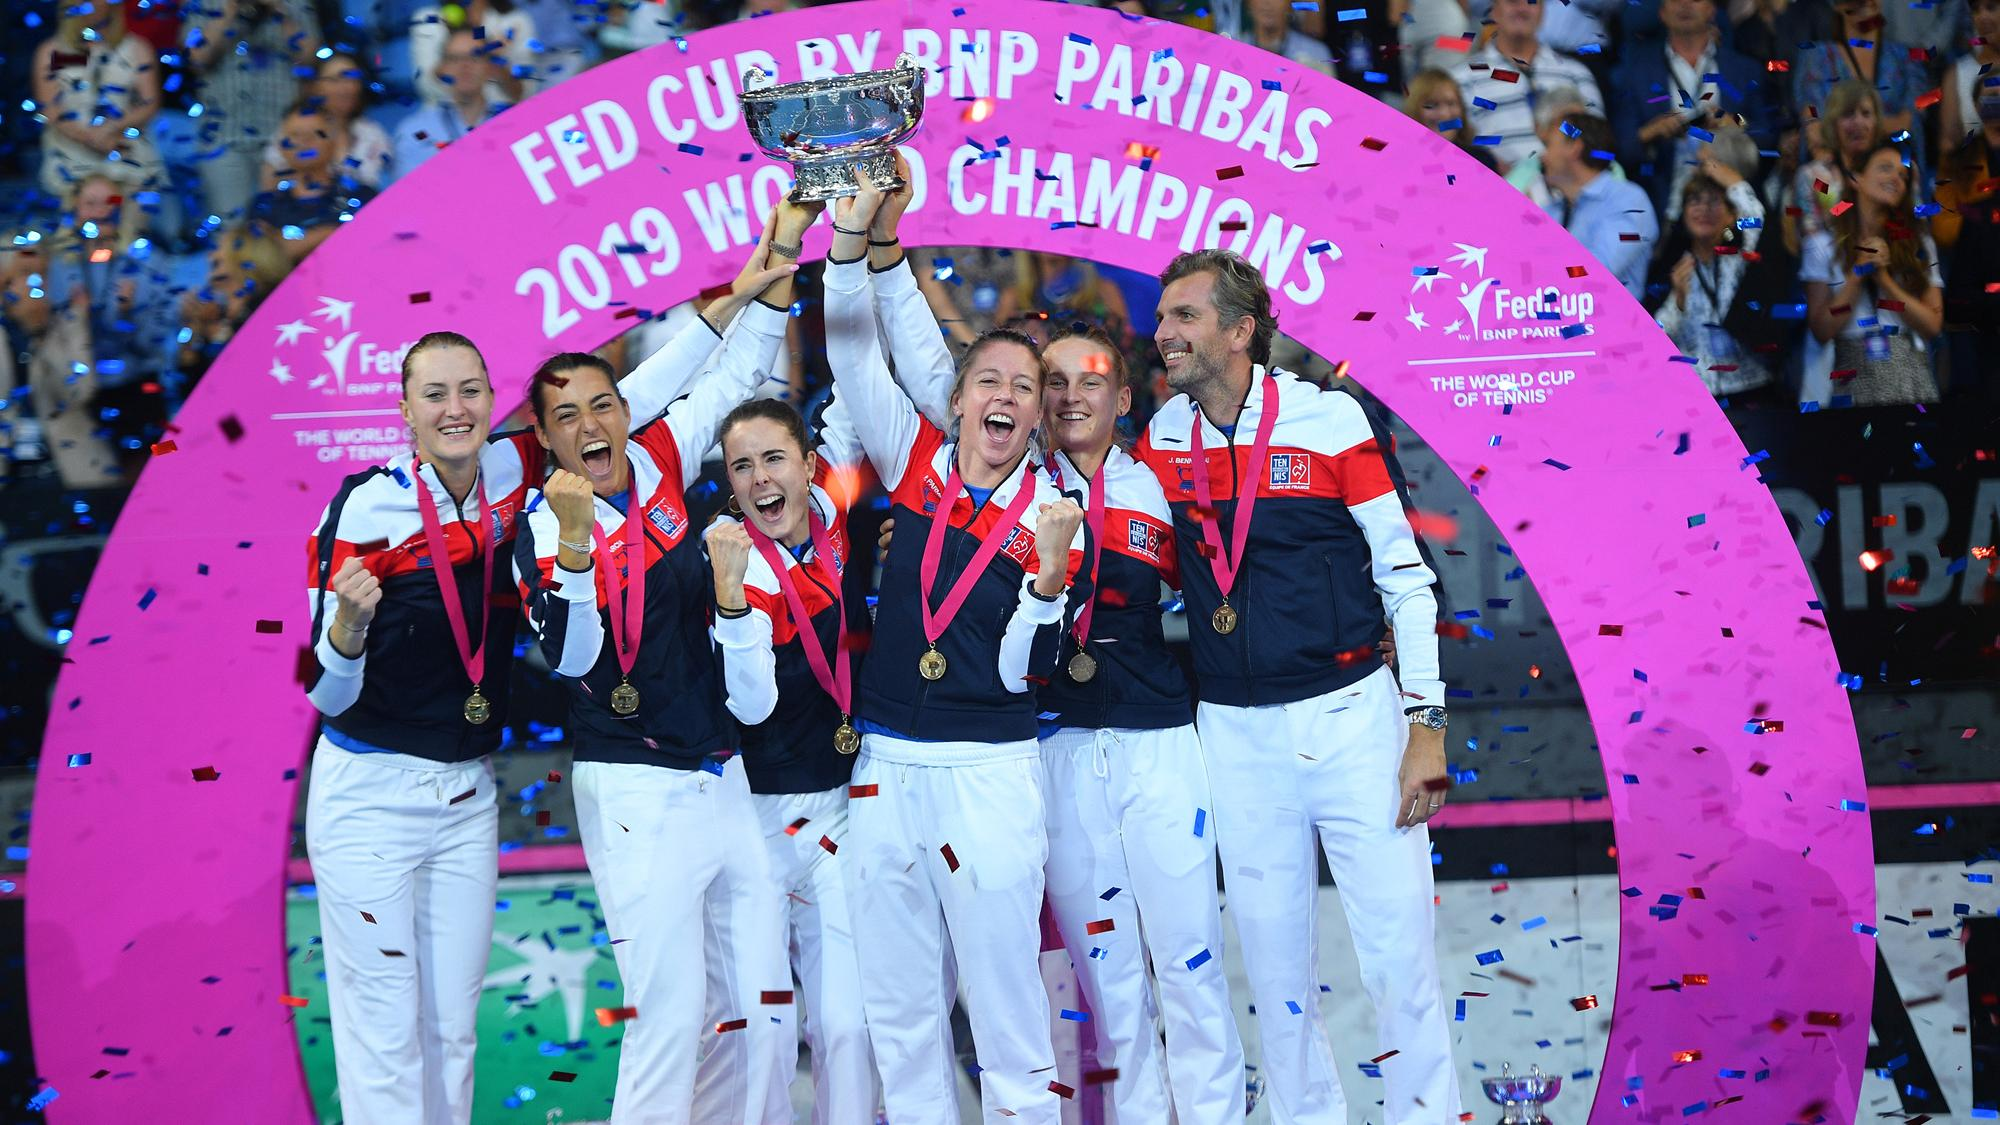 FED CUP 2019 Finale   - Page 4 Coc_0730a